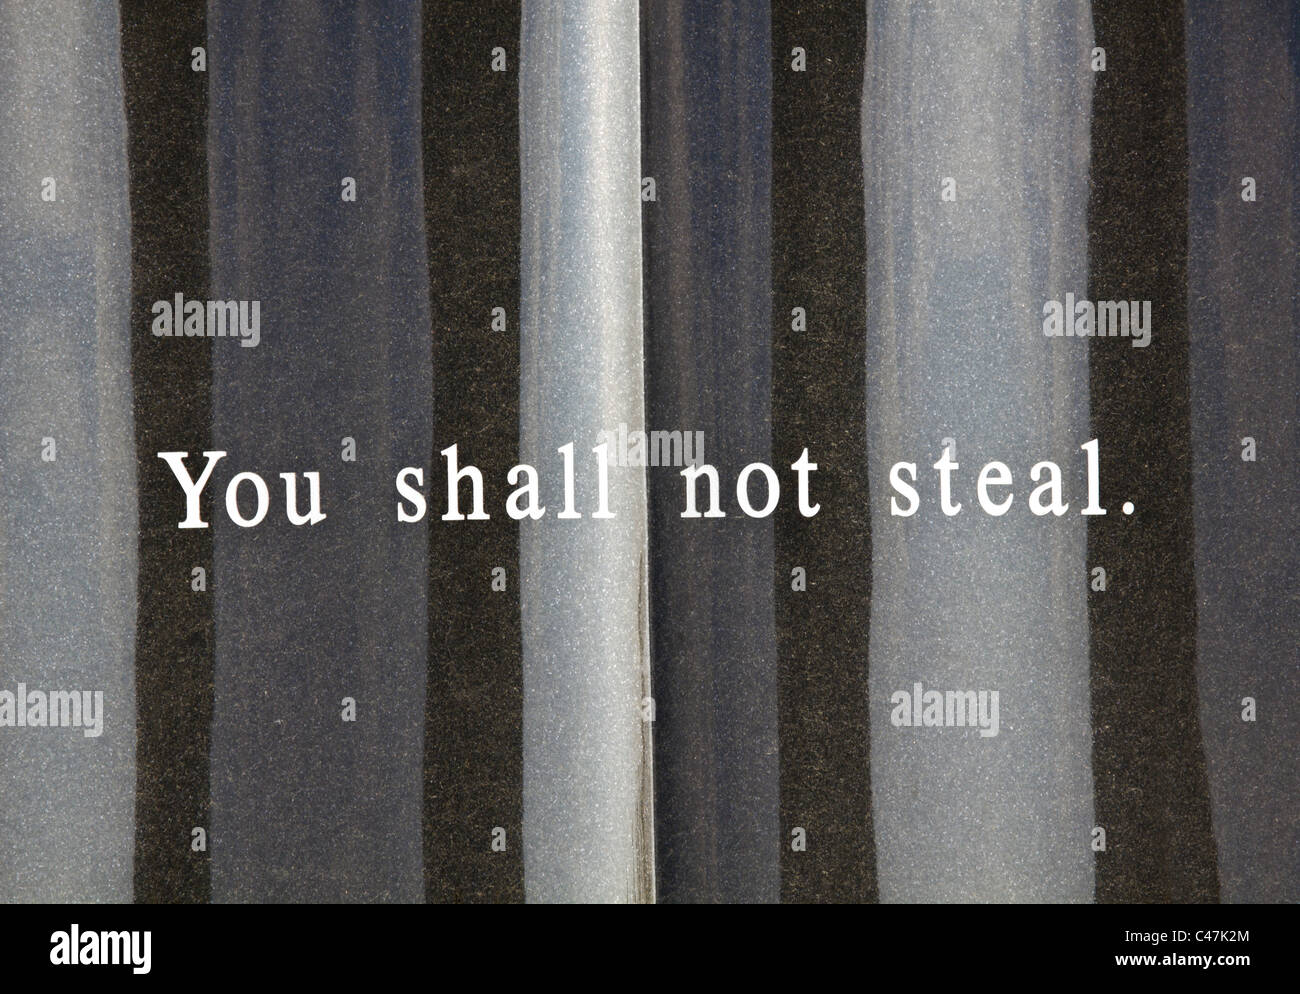 Seventh commandment - Stock Image